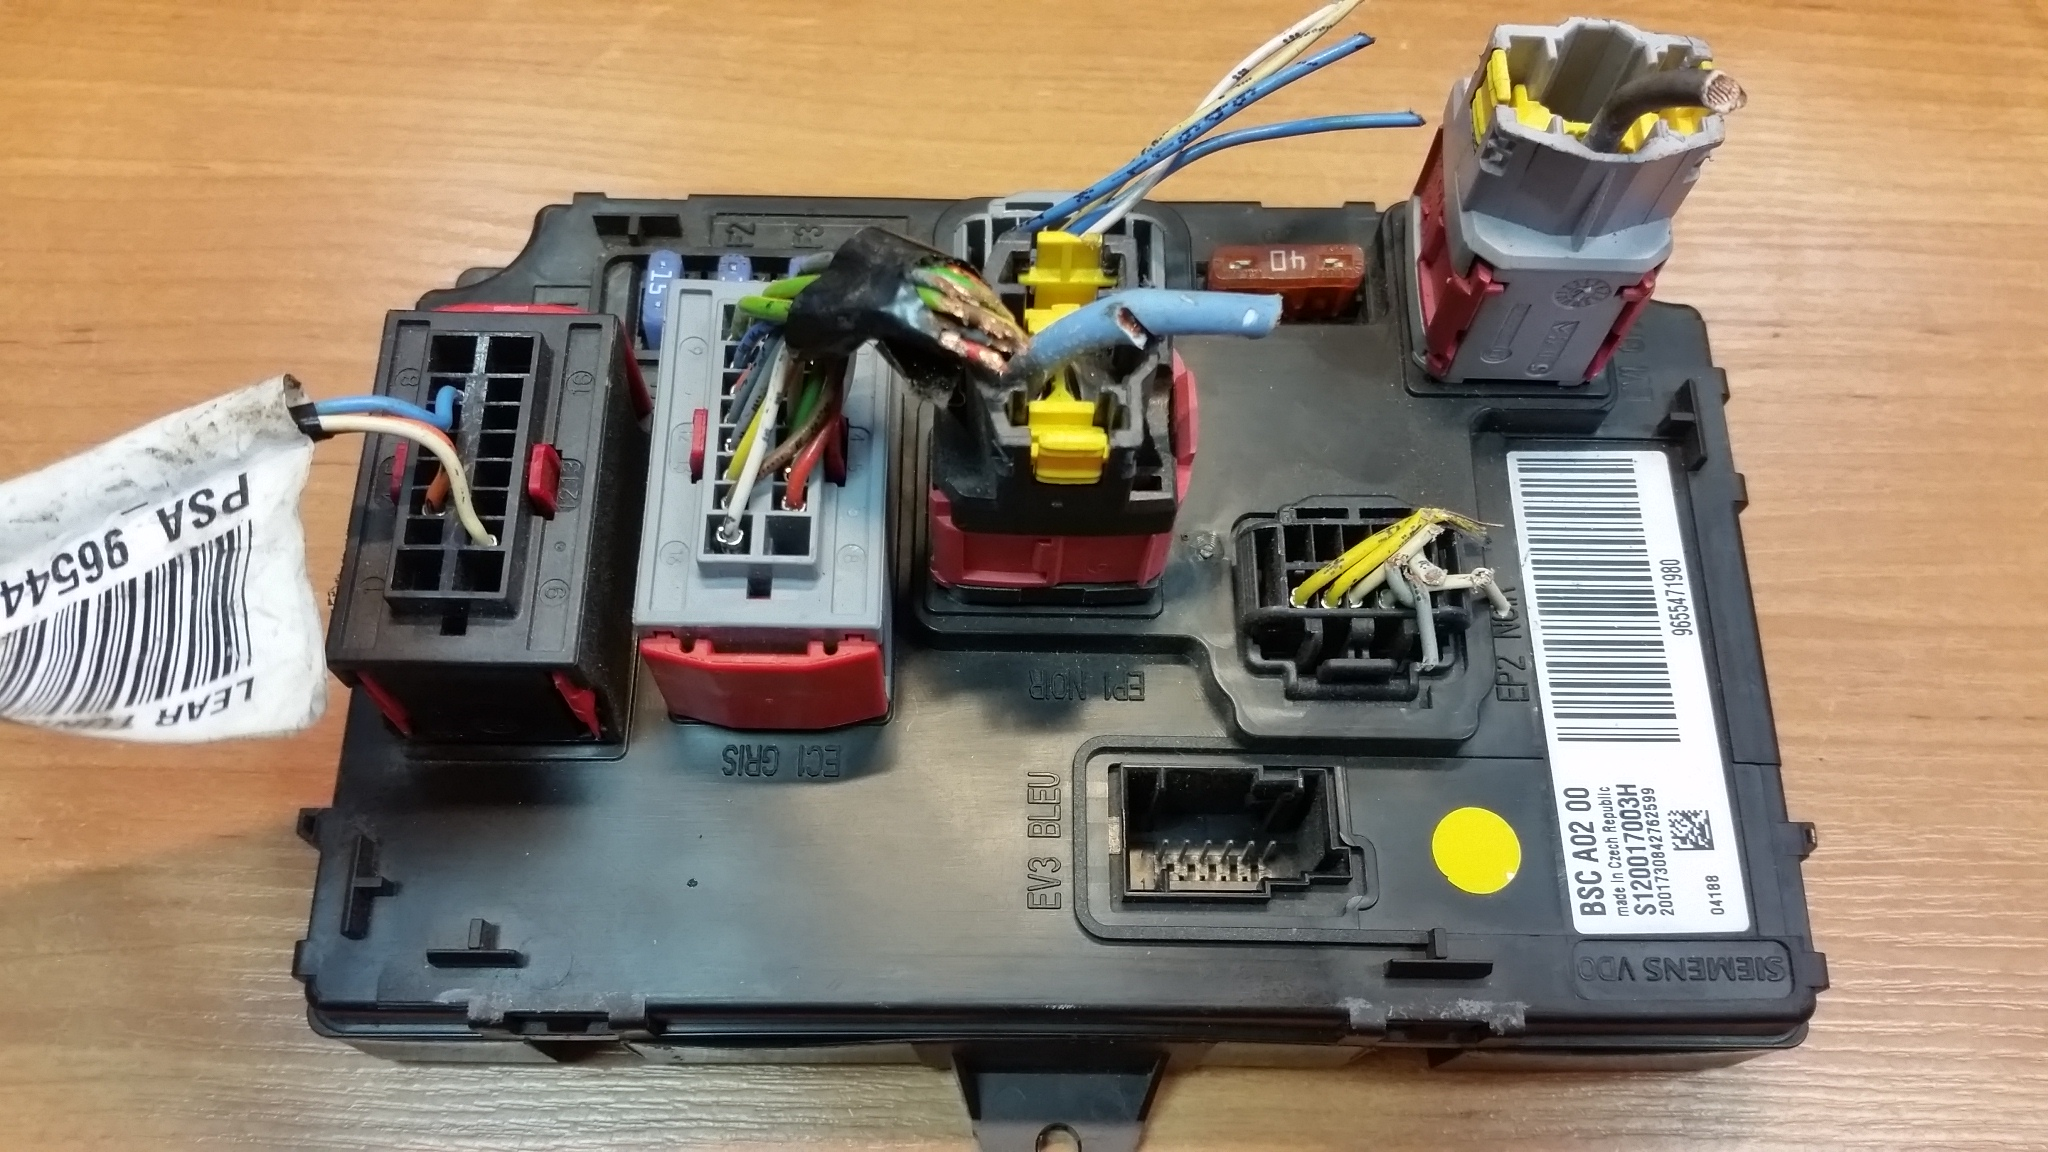 Fuse Box Location Peugeot 406 : Peugeot fuse box location wiring library